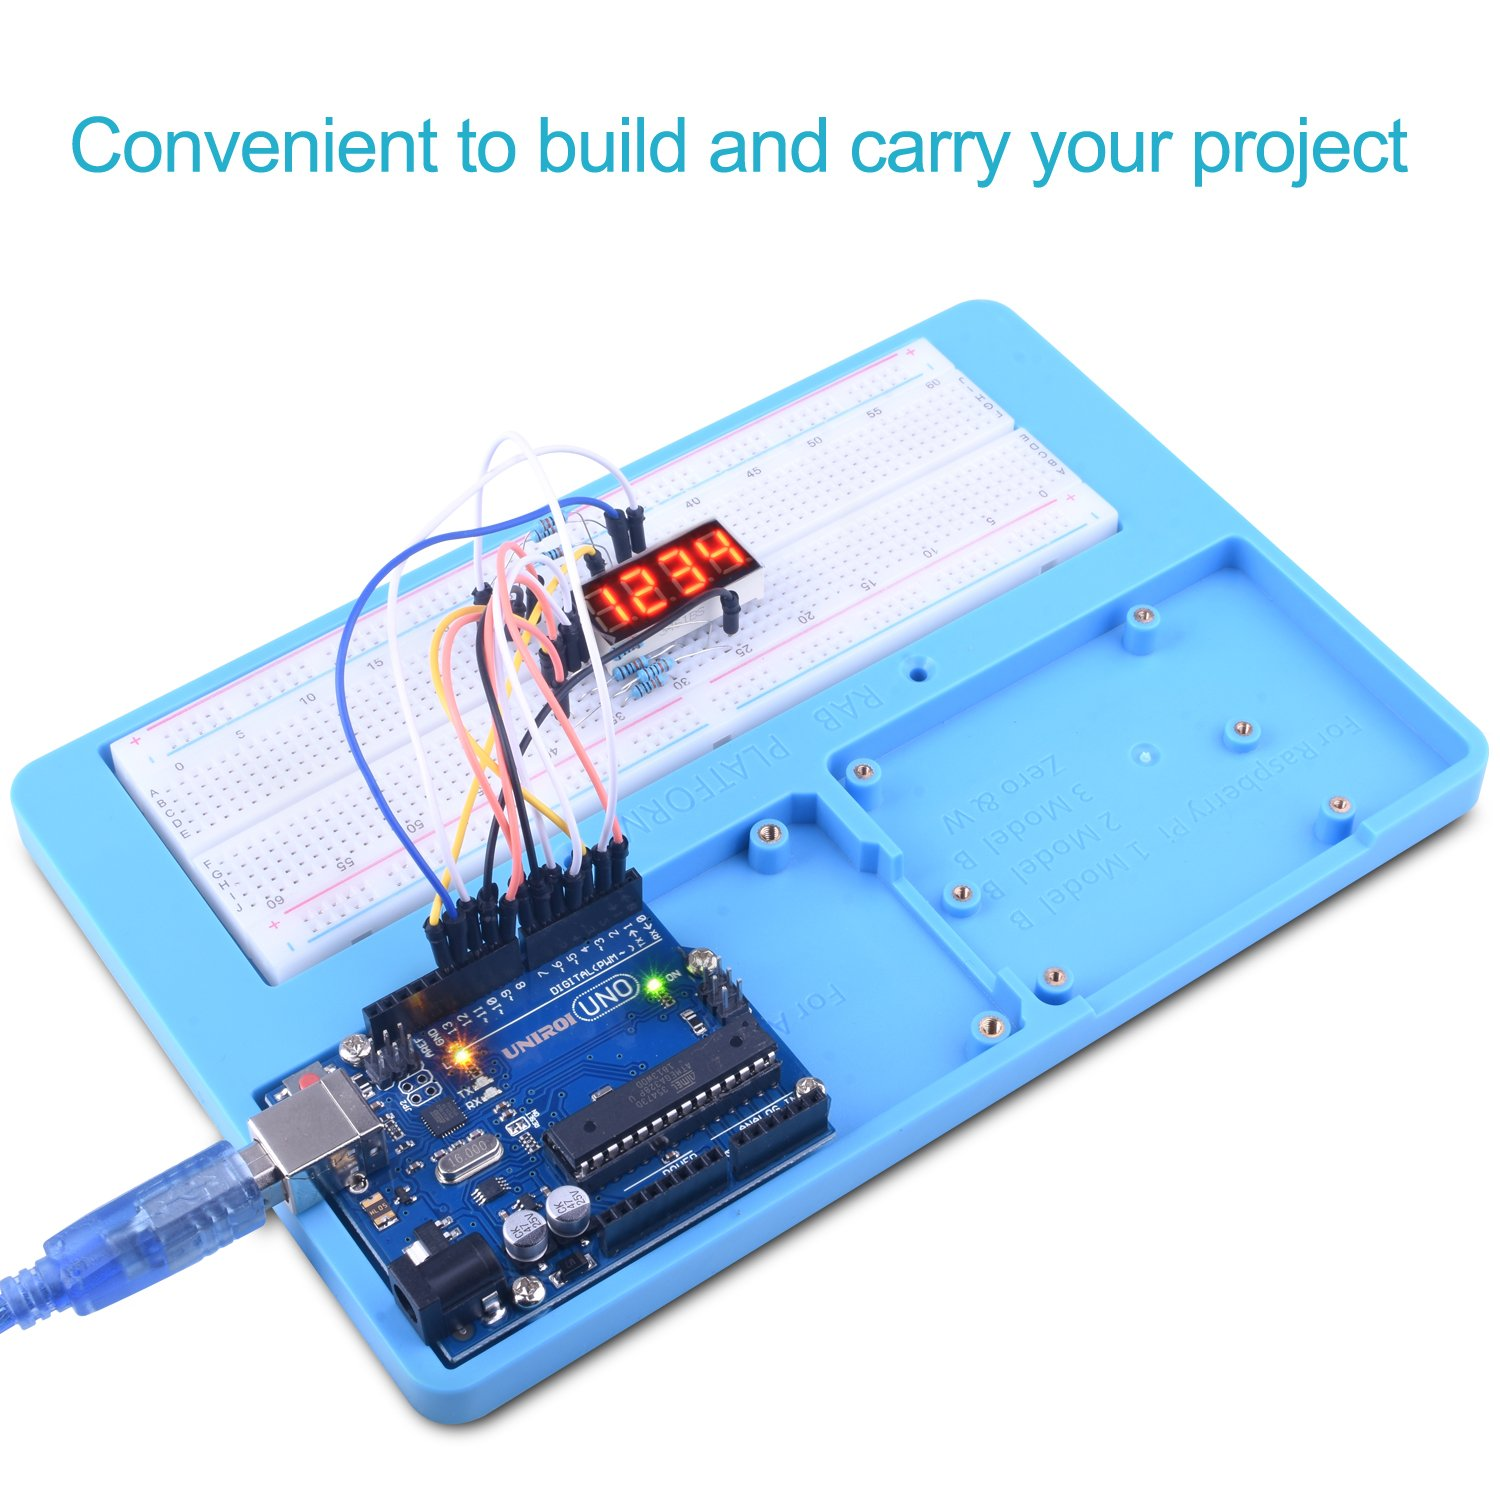 Uno Starter Kit For Arduino Uniroi Complete Project 42 Breadboarded Circuit Beginner With Detailed Tutorials Rab Holder Breadboard R3